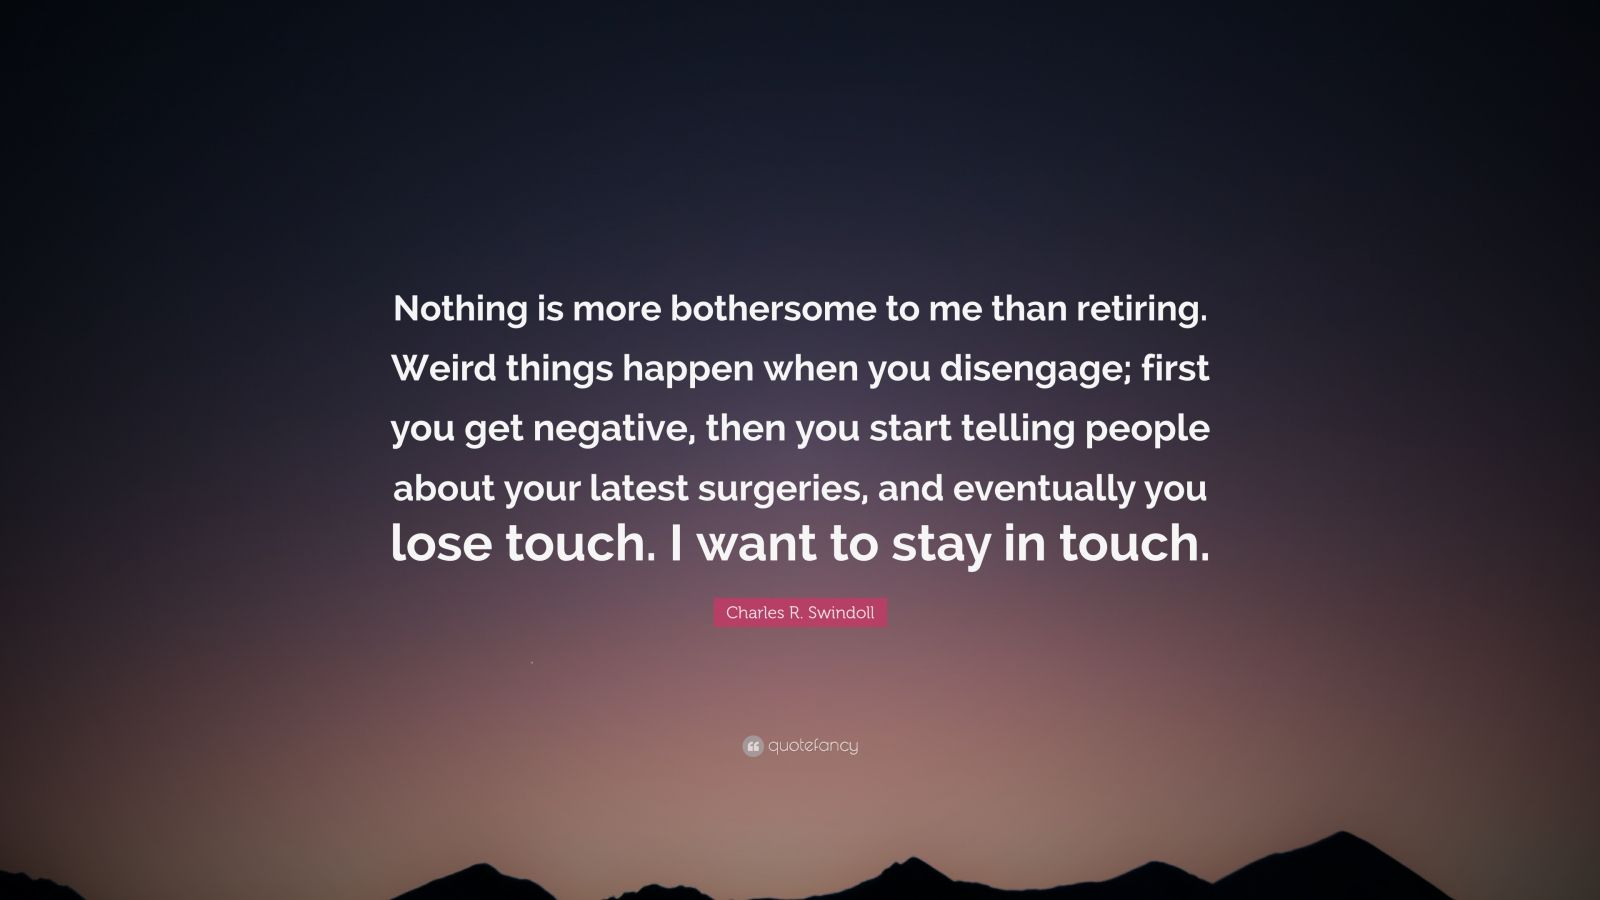 "Charles R. Swindoll Quote: ""Nothing is more bothersome to me than retiring. Weird things happen when you disengage; first you get negative, then you start telling people about your latest surgeries, and eventually you lose touch. I want to stay in touch."""